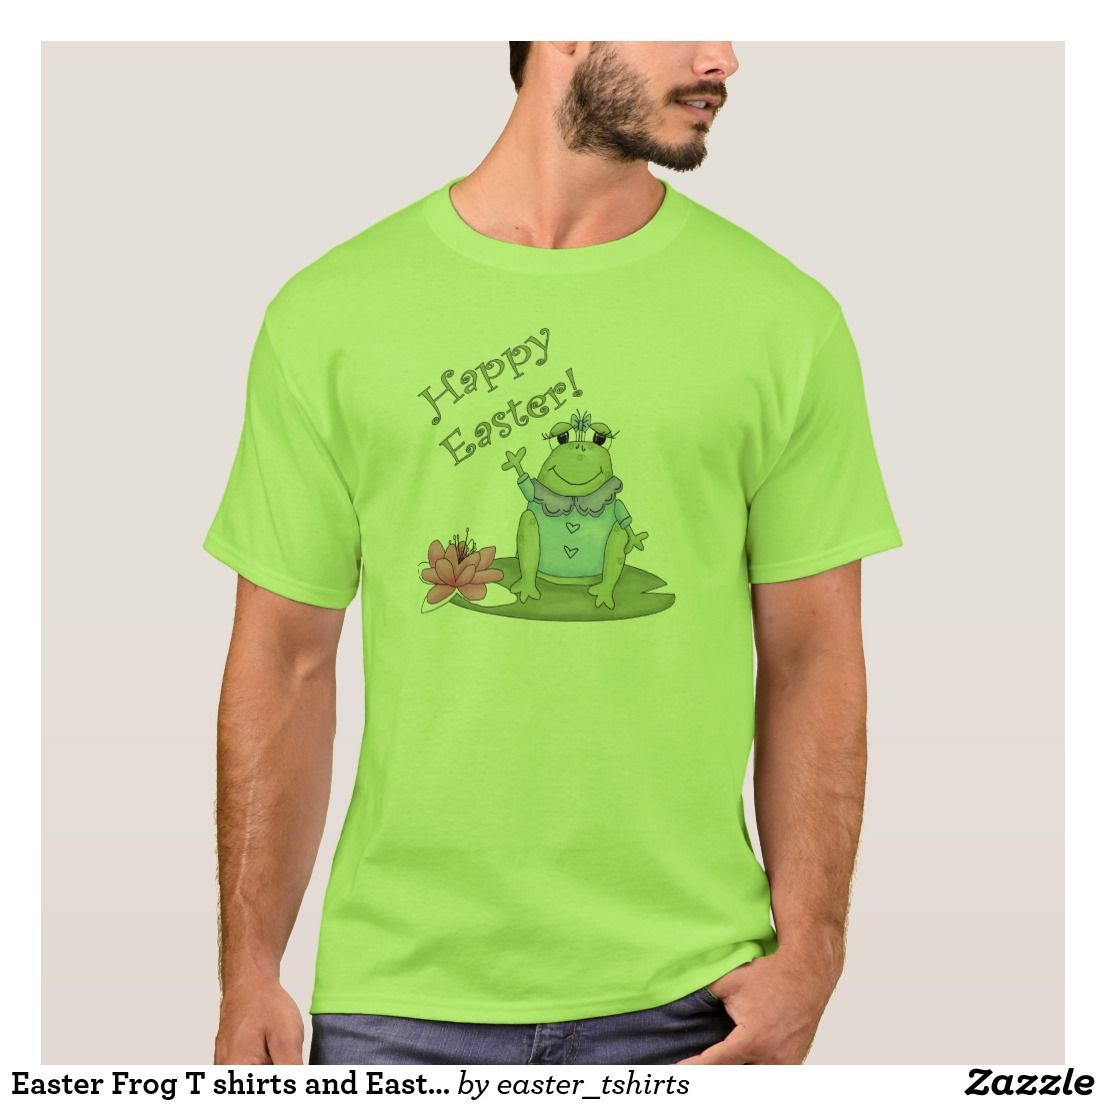 Easter frog t shirts and easter gifts easter sunday school crafts easter frog t shirts and easter gifts easter sunday school crafts easter sunday school lessons for kids jesus easter sunday mens t shirts easter sunday negle Gallery